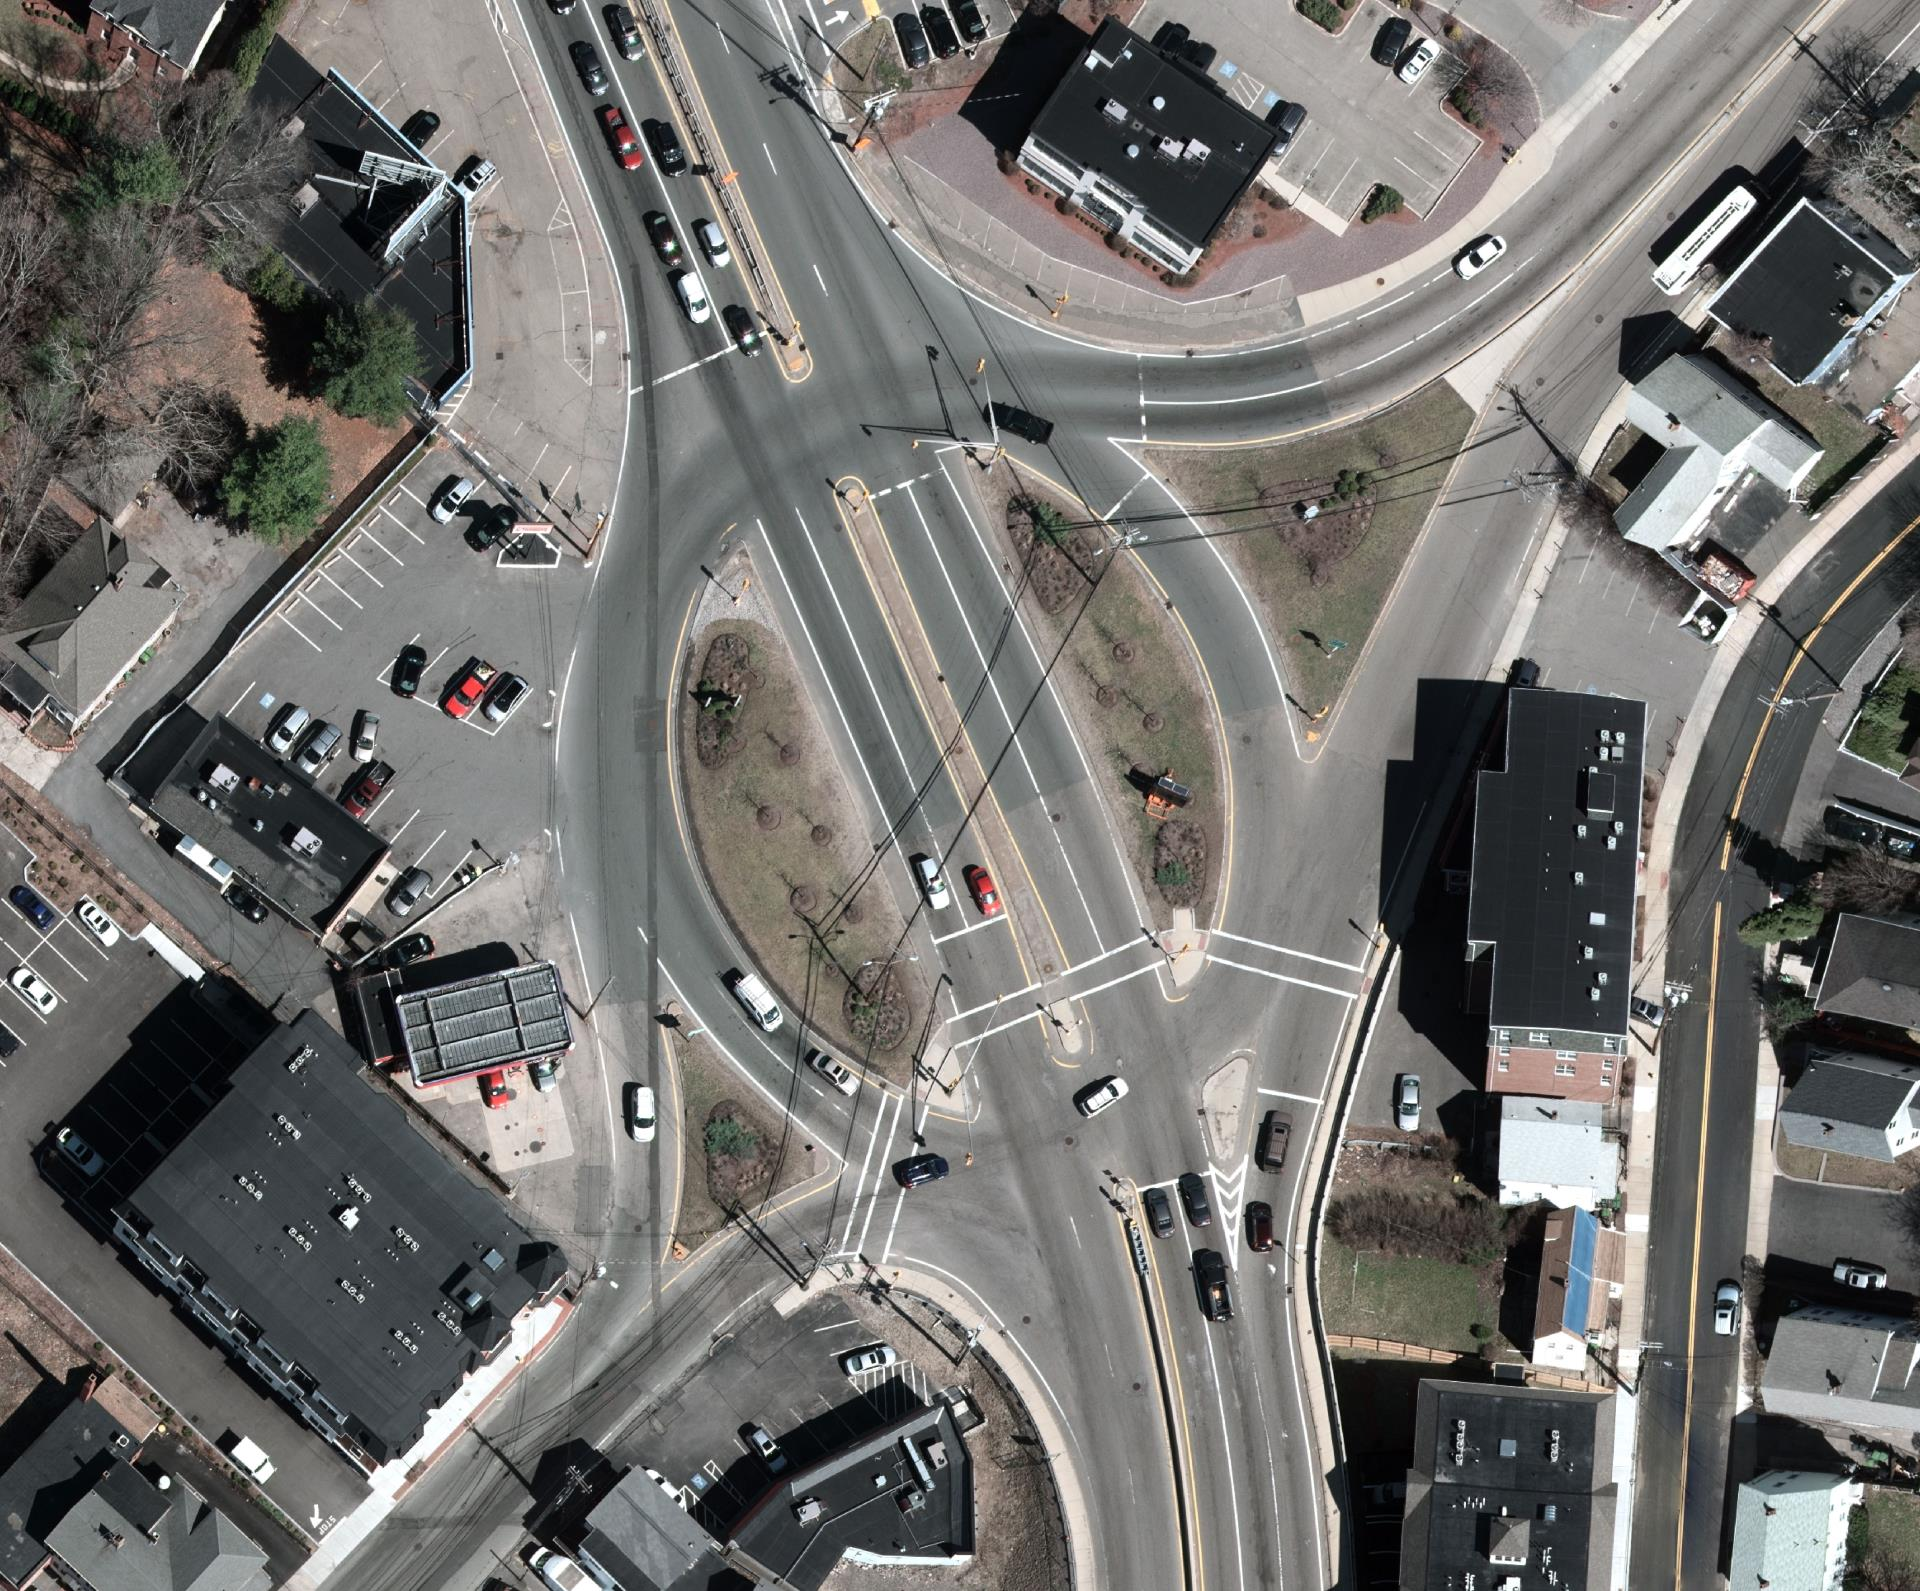 Aerial View of this complicated intersection